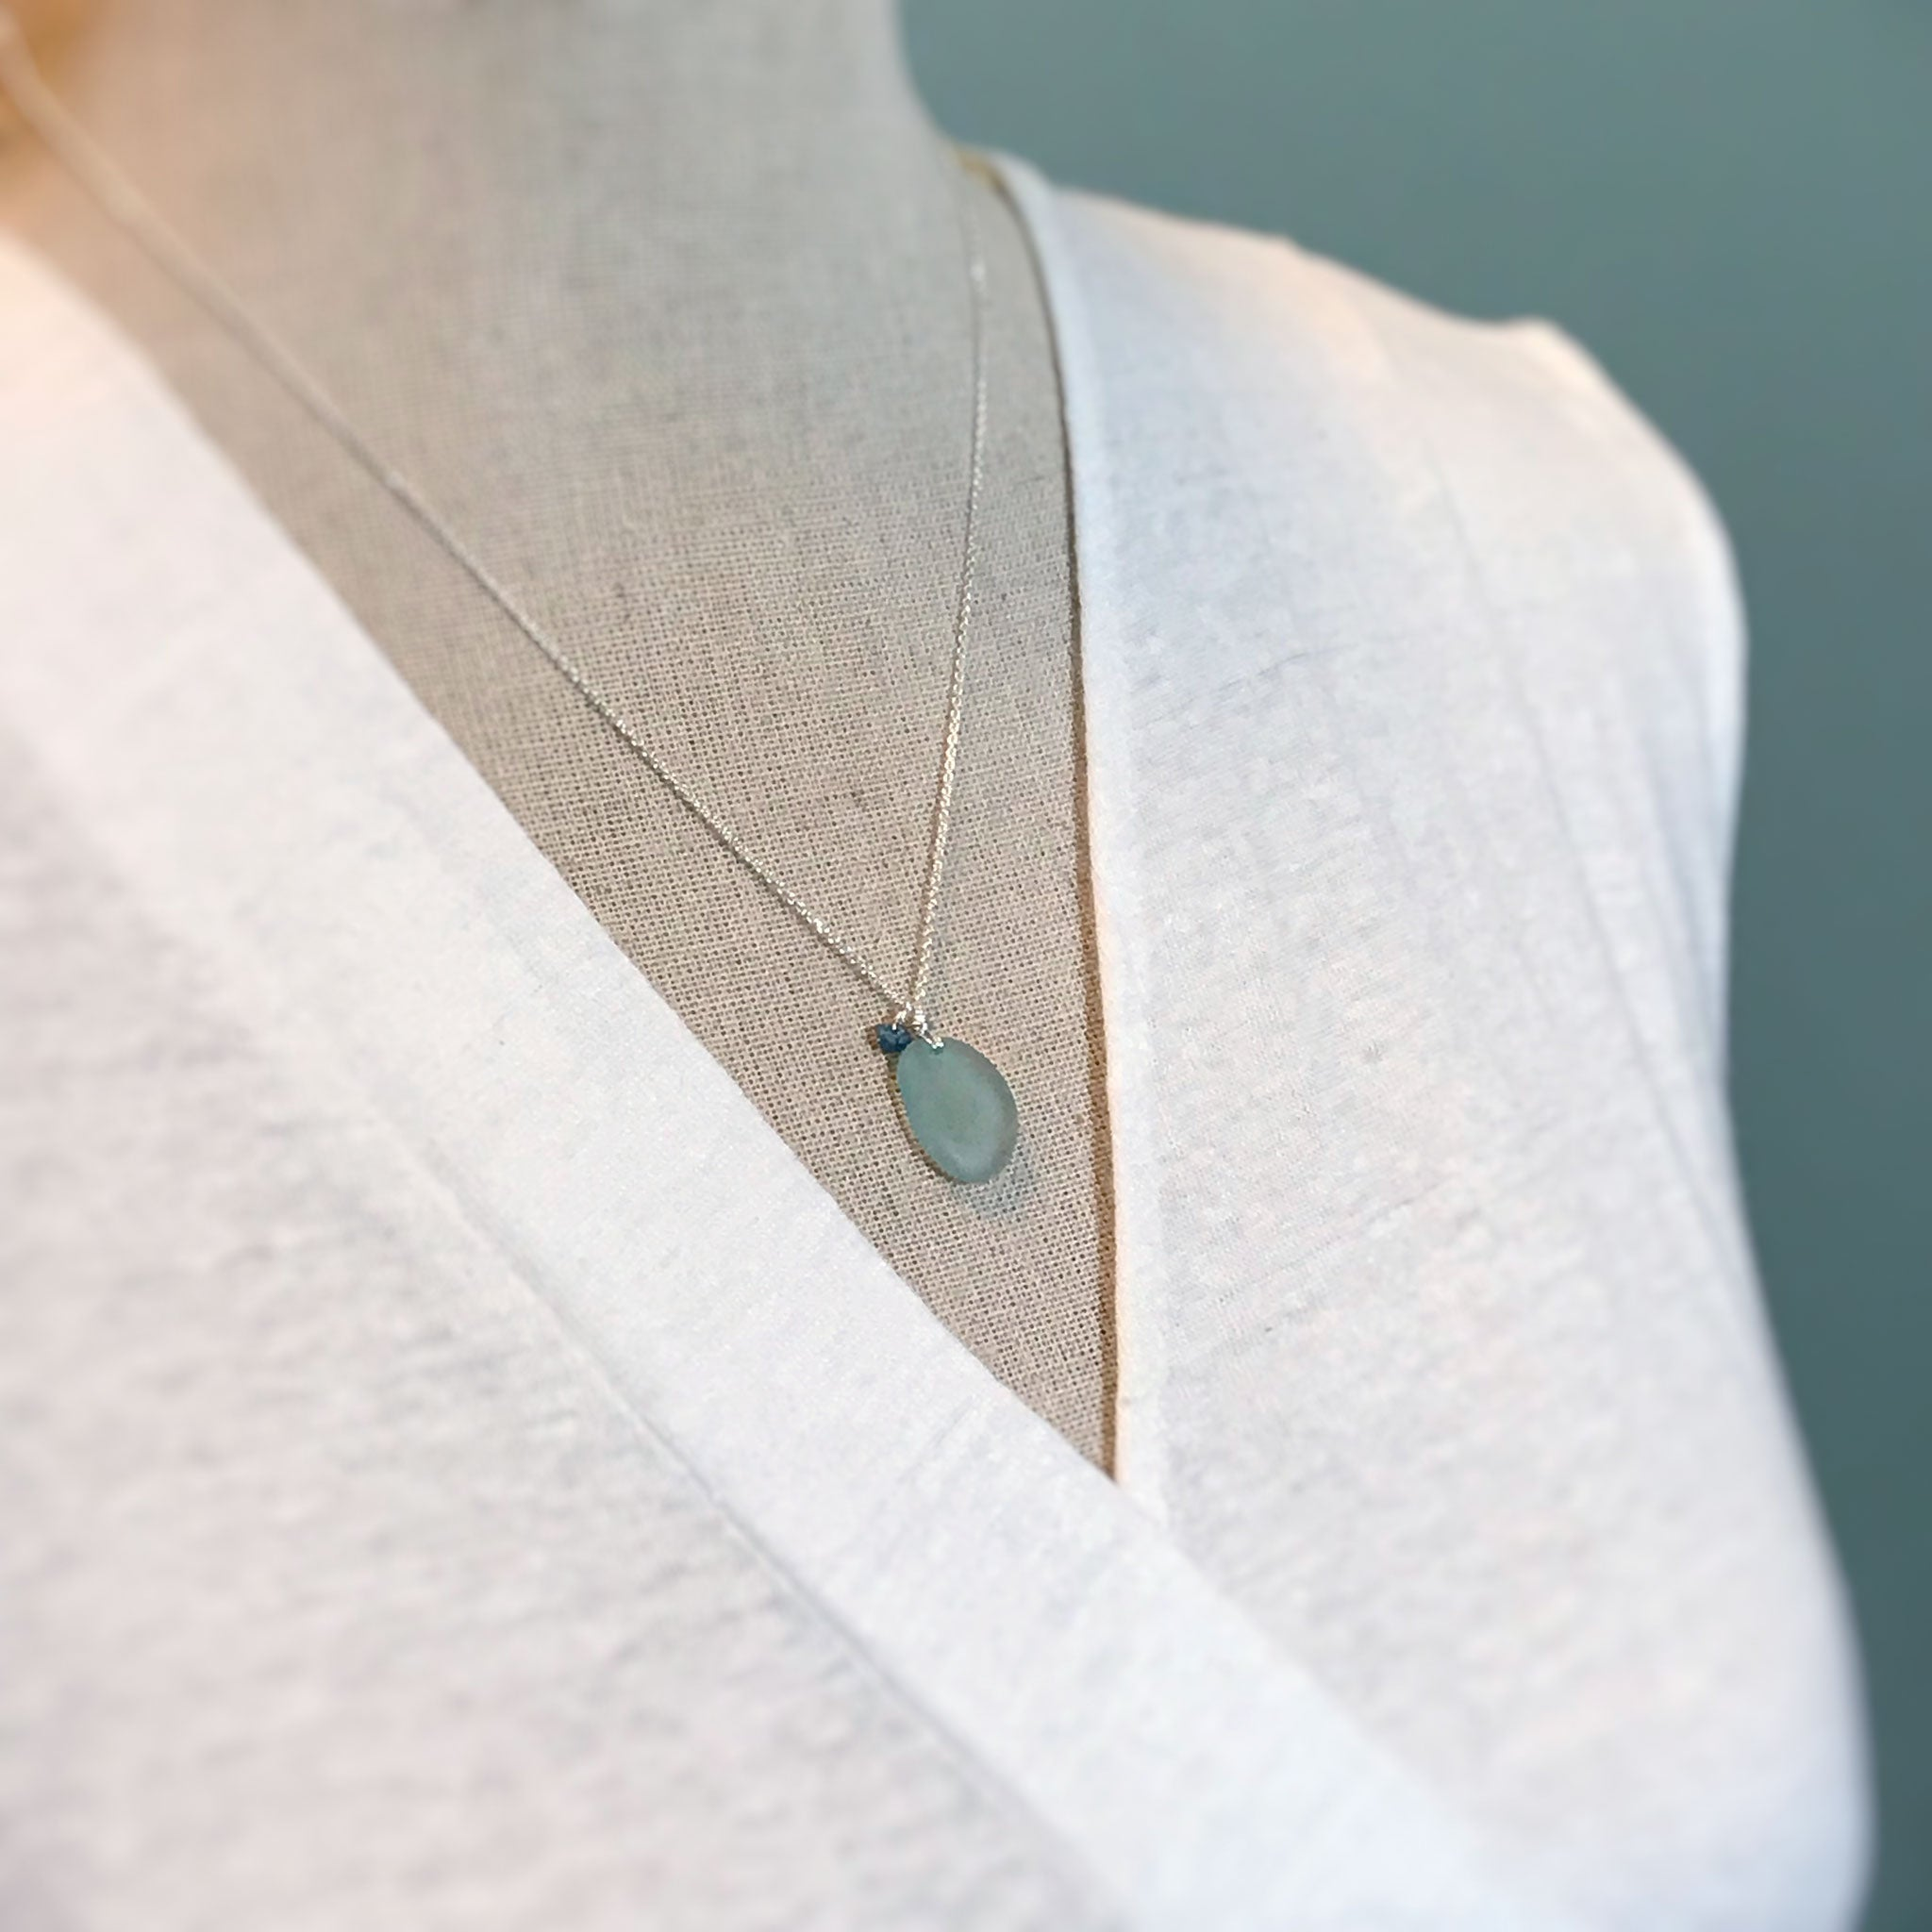 Silver & Aqua Seaglass Necklace with Blue Rough-cut Diamond - kriket-broadhurst Seaglass jewellery